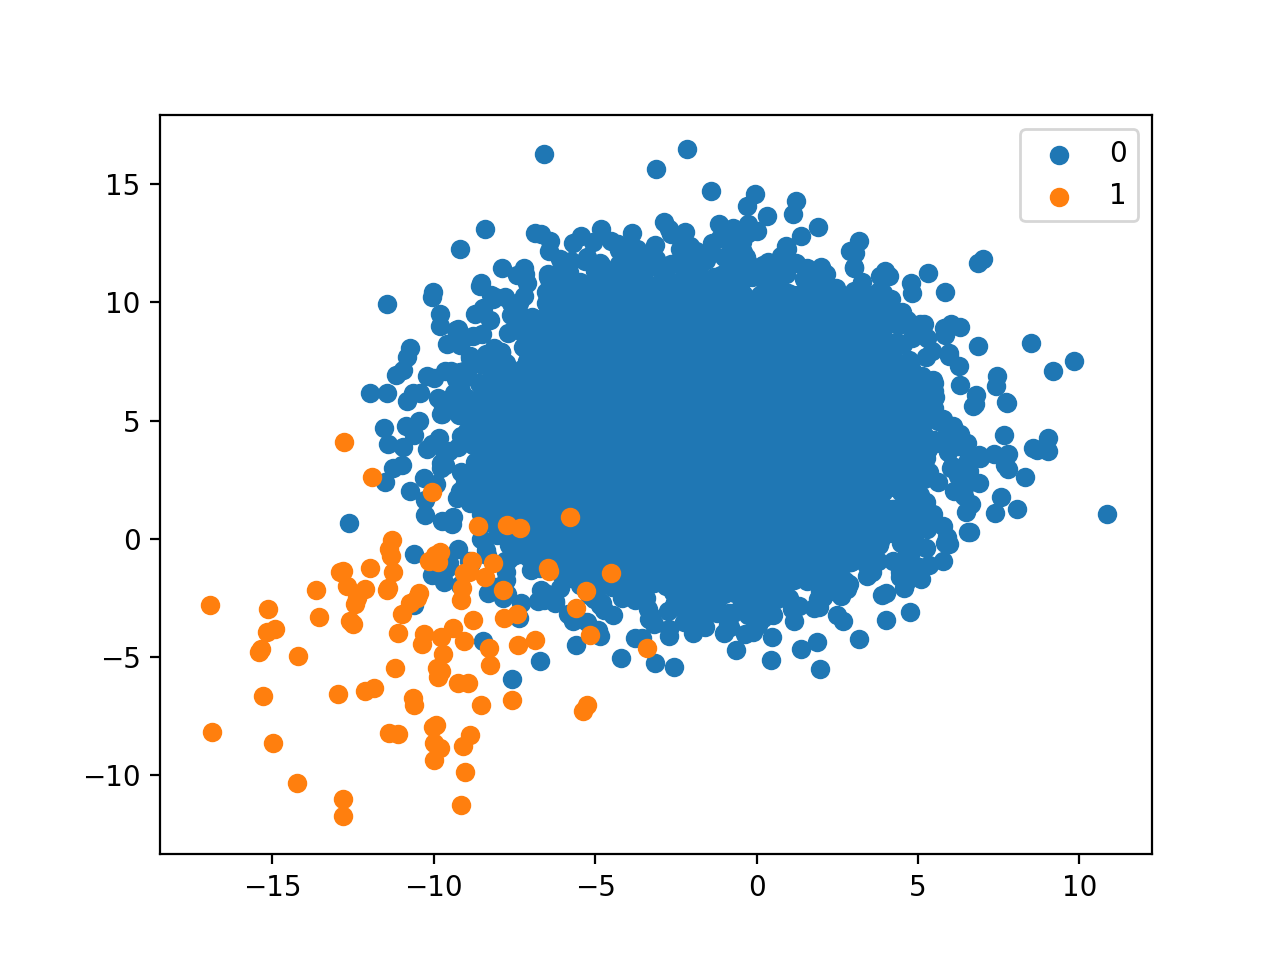 Scatter Plot of Binary Classification Dataset With 1 to 100 Class Distribution